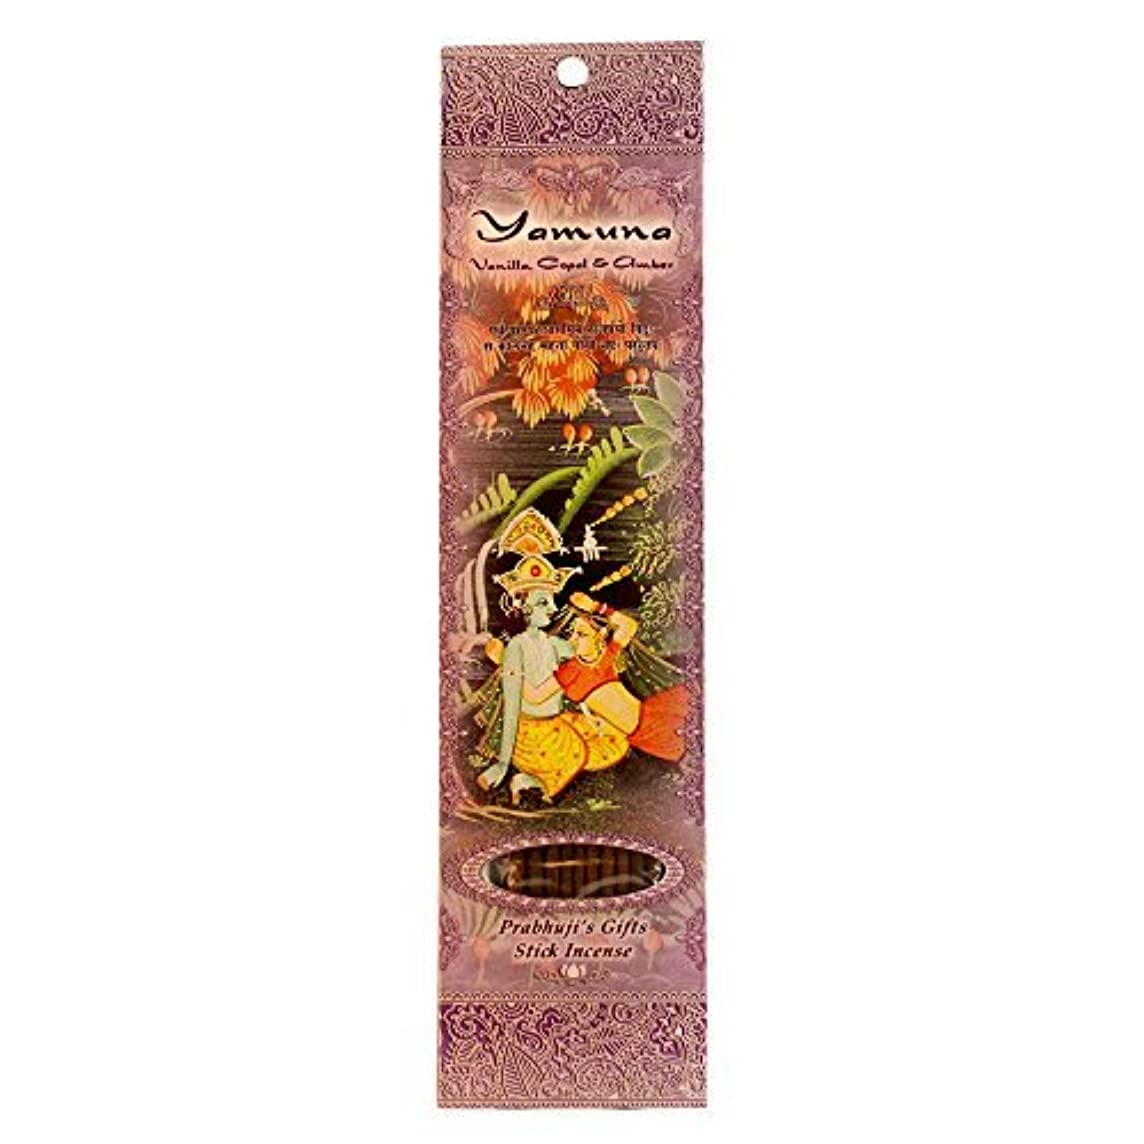 浮浪者全体不安定Incense Sticks Yamuna - Vanilla Copal and Amber [並行輸入品]